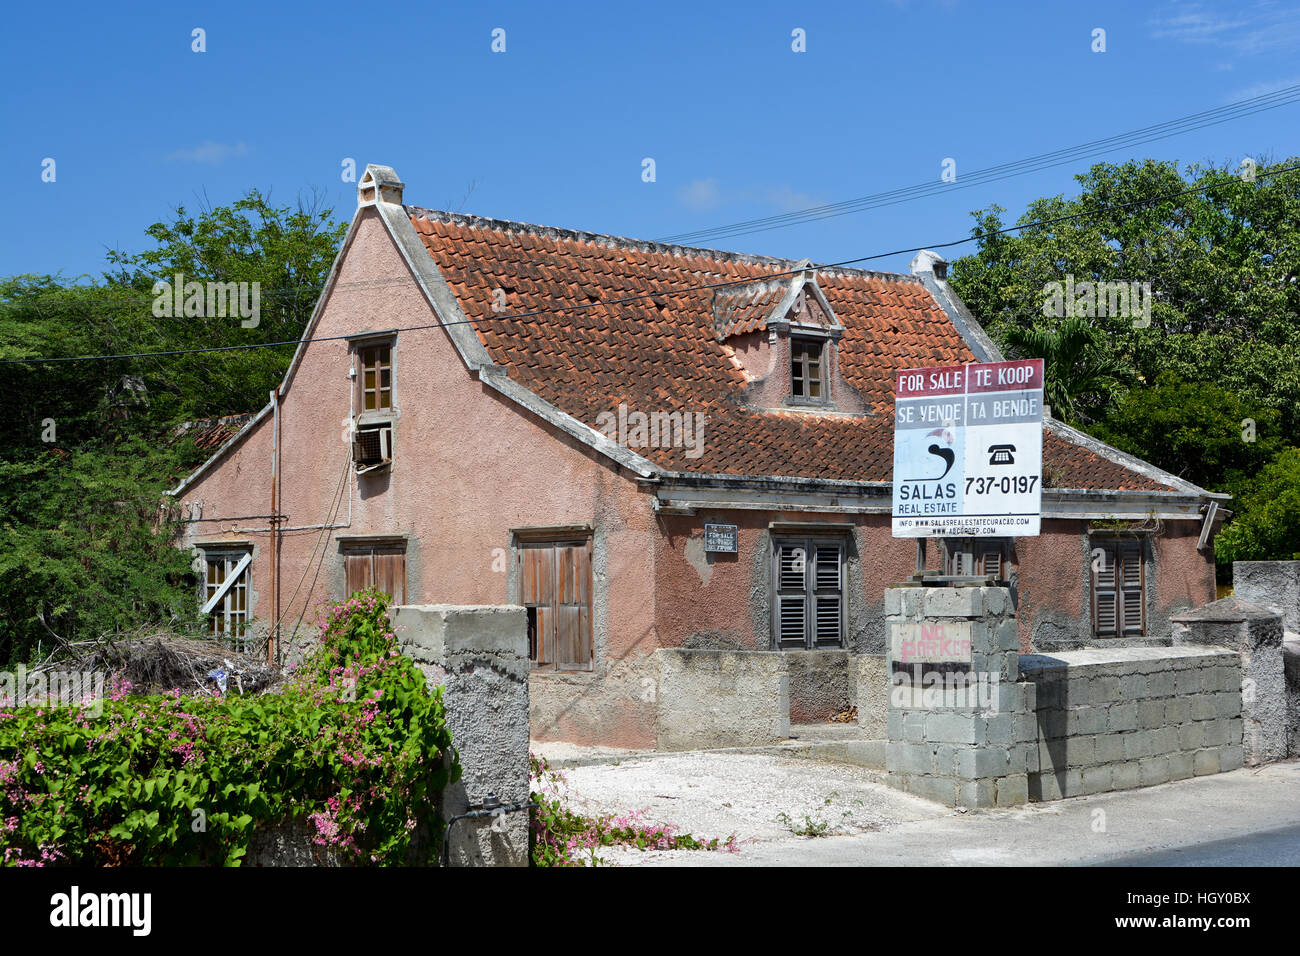 Run down house for sale - bilingual for sale - Stock Image